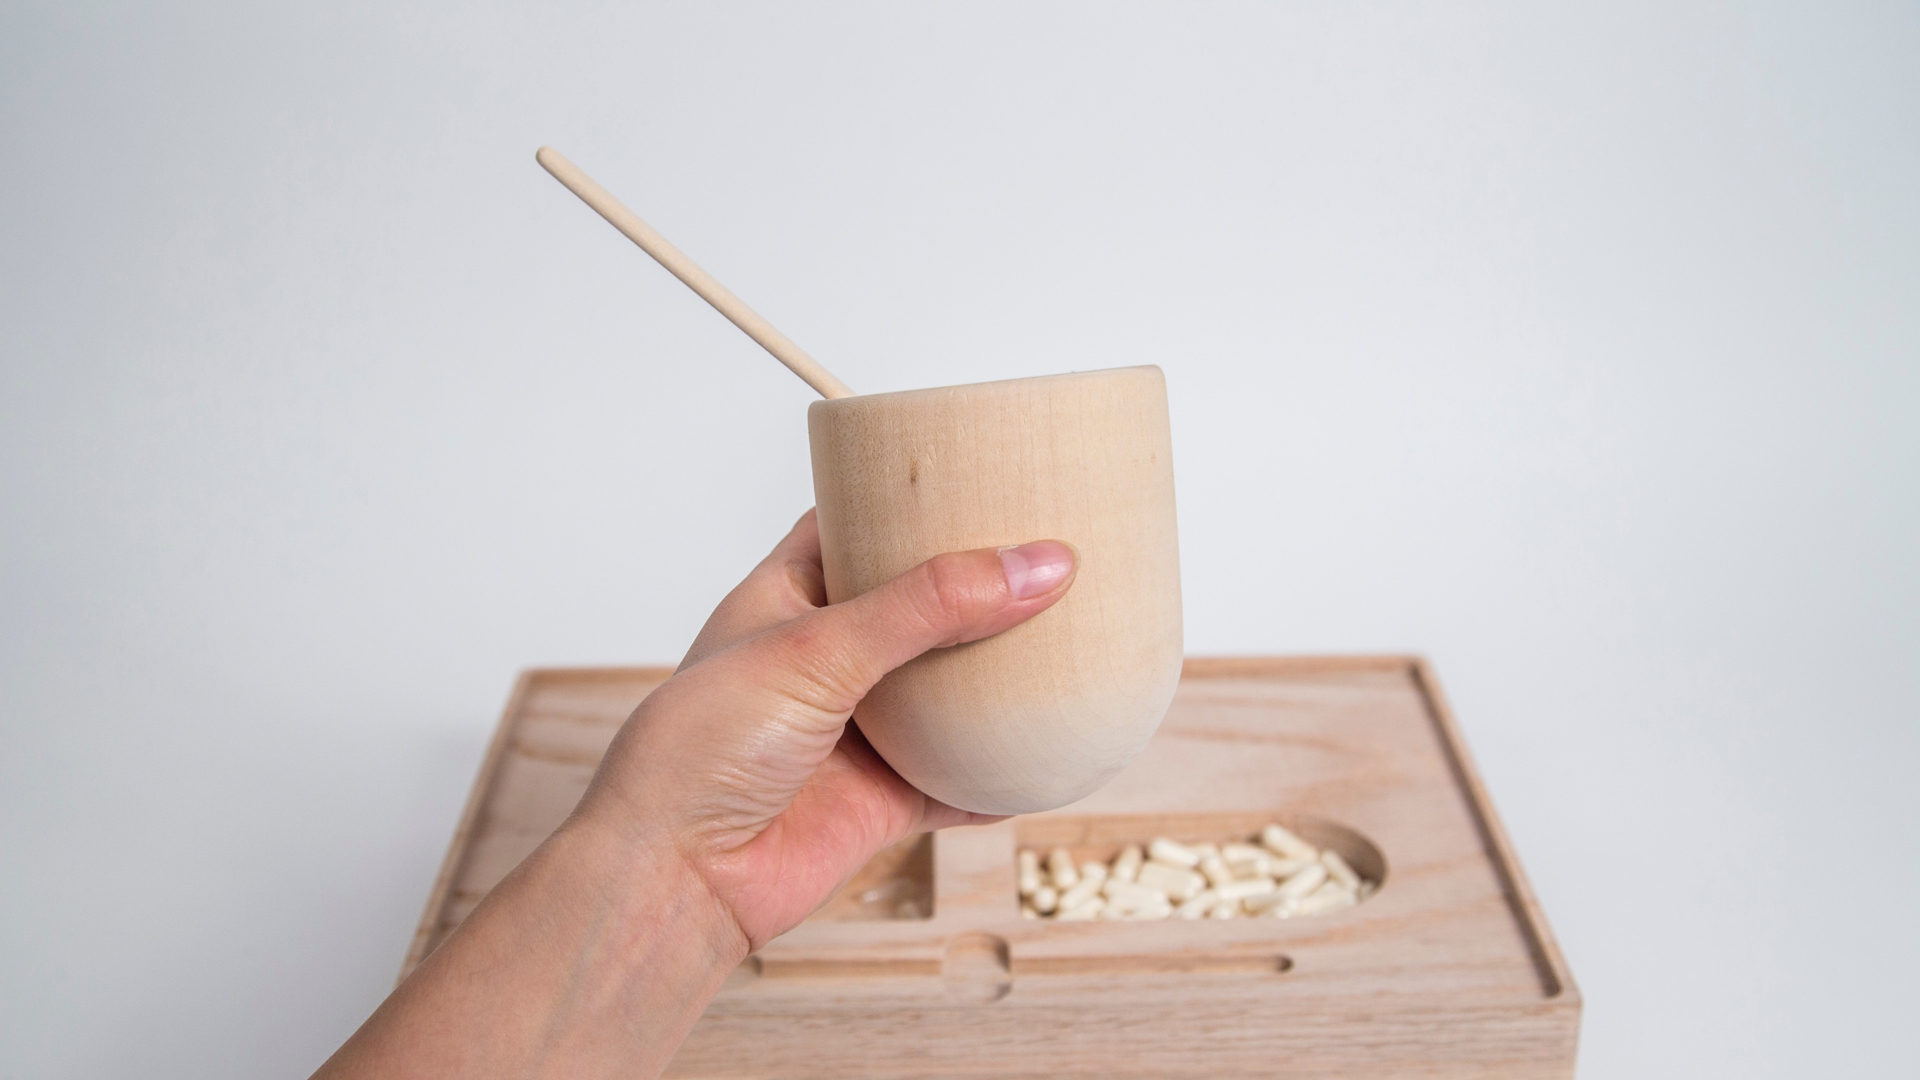 The products shown in this image are not real. They are speculative designs created as part of an academic Masters thesis project. The work is a prototype only, constructed to investigate the potential role of design in the context of end-of-life issues.